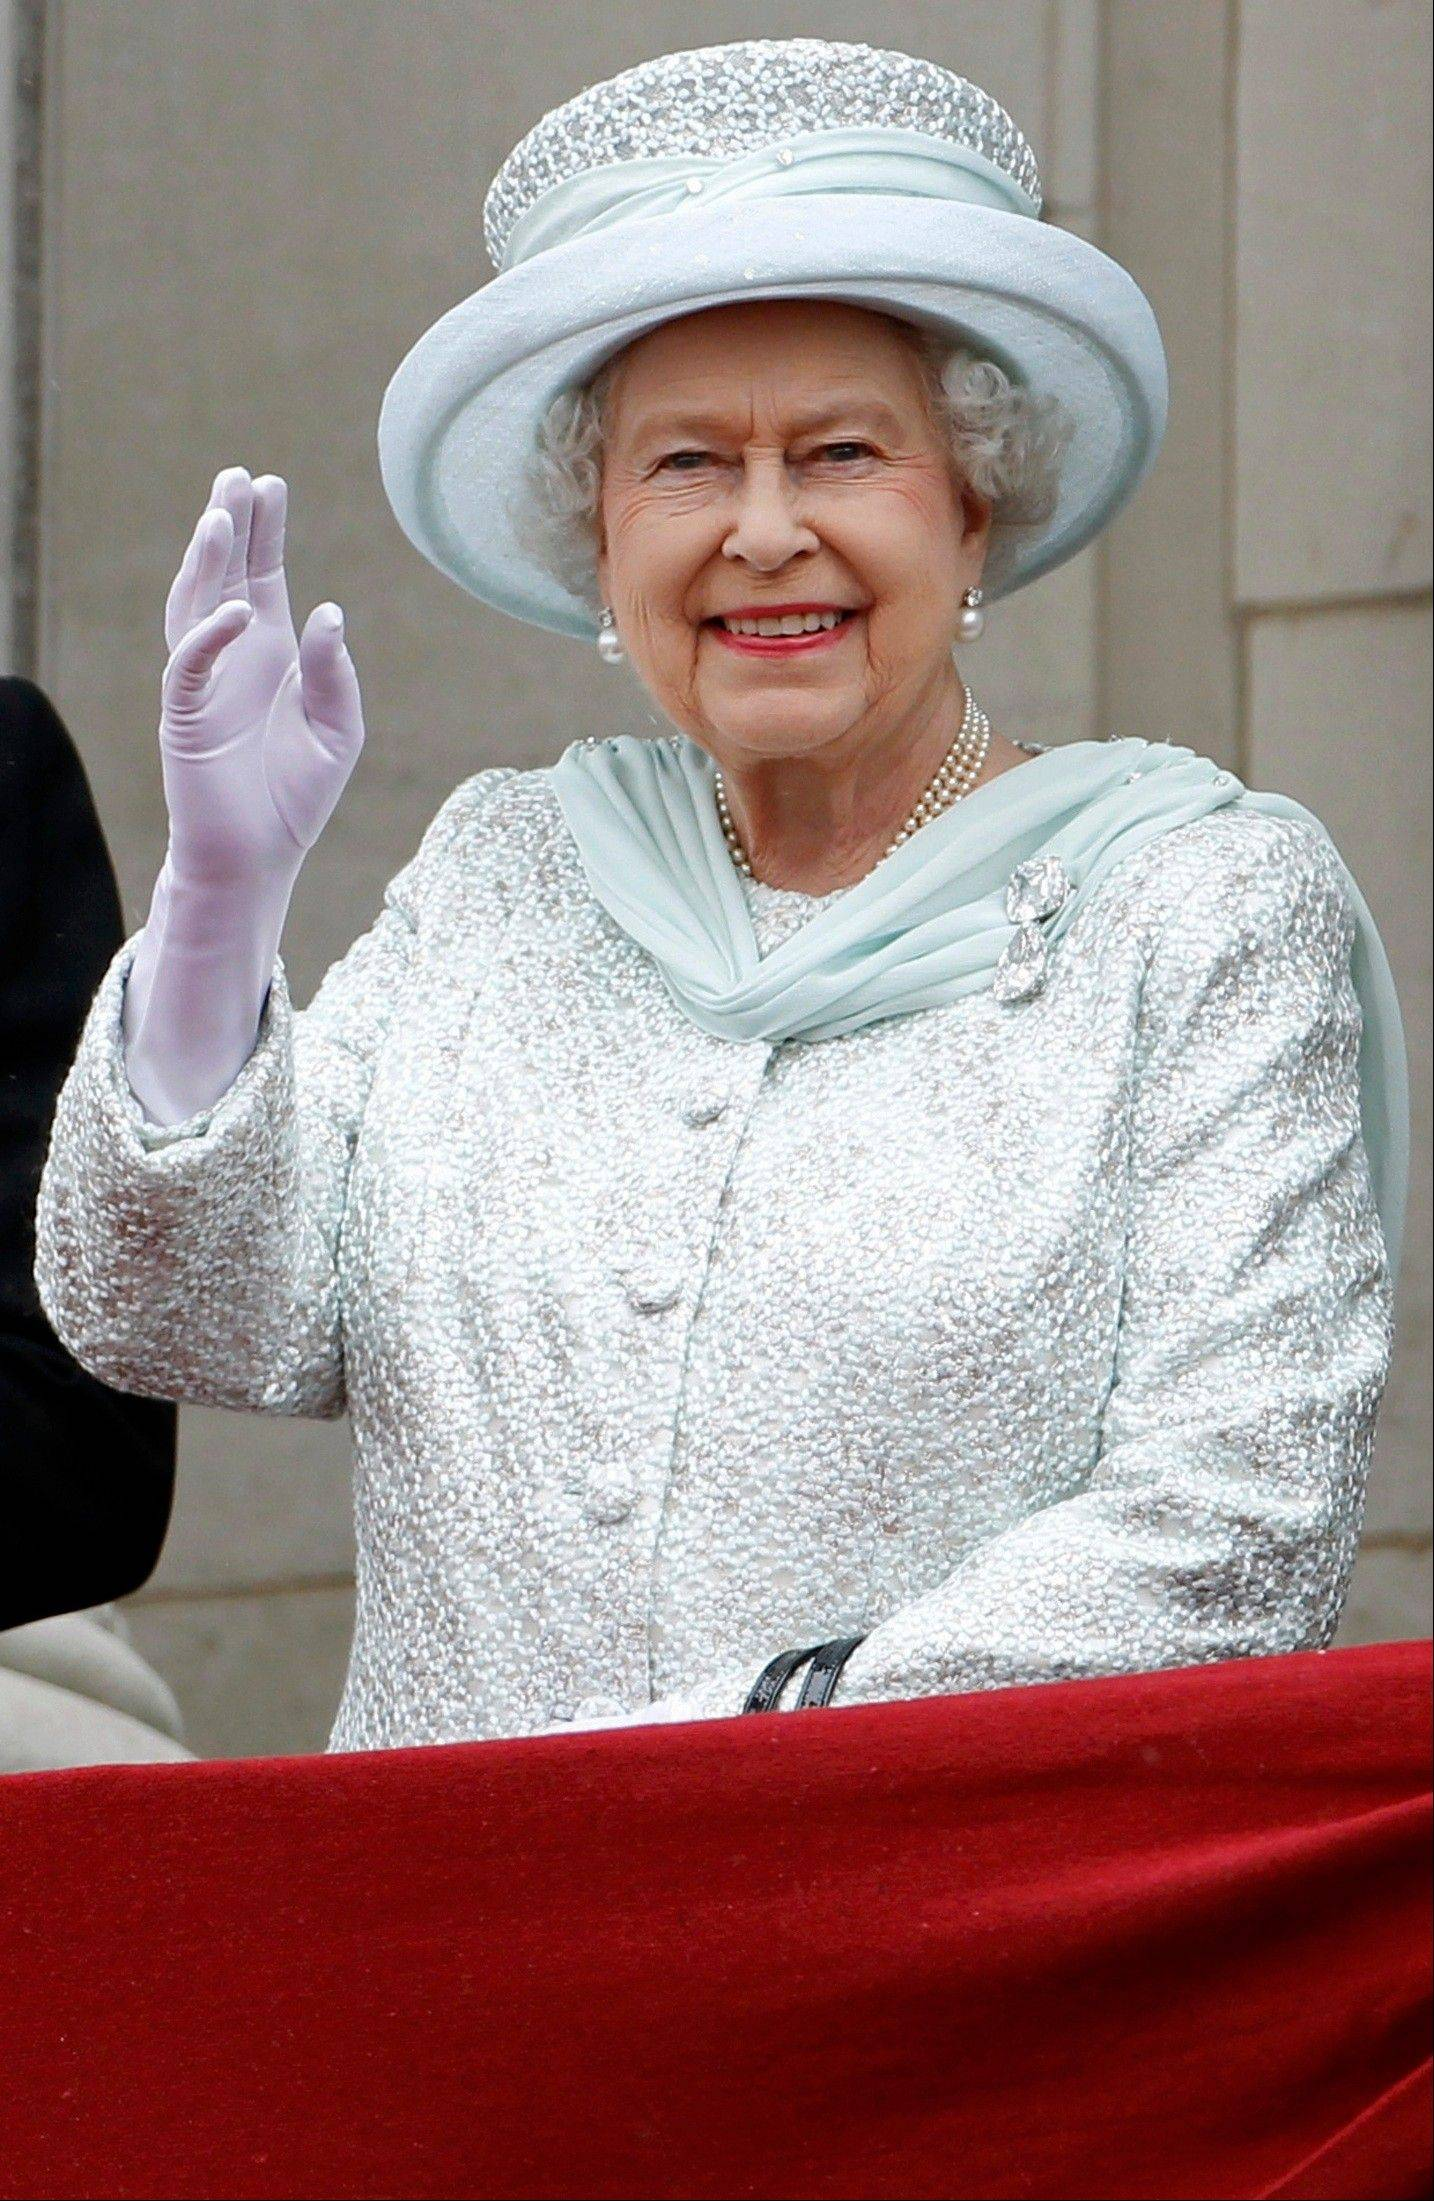 Britain's Queen Elizabeth waves from the balcony at Buckingham Palace during the Diamond Jubilee celebrations in central London Tuesday June 5, 2012. Four days of nationwide celebrations during which millions of people have turned out to mark the Queen's Diamond Jubilee conclude on Tuesday with a church service and carriage procession through central London.